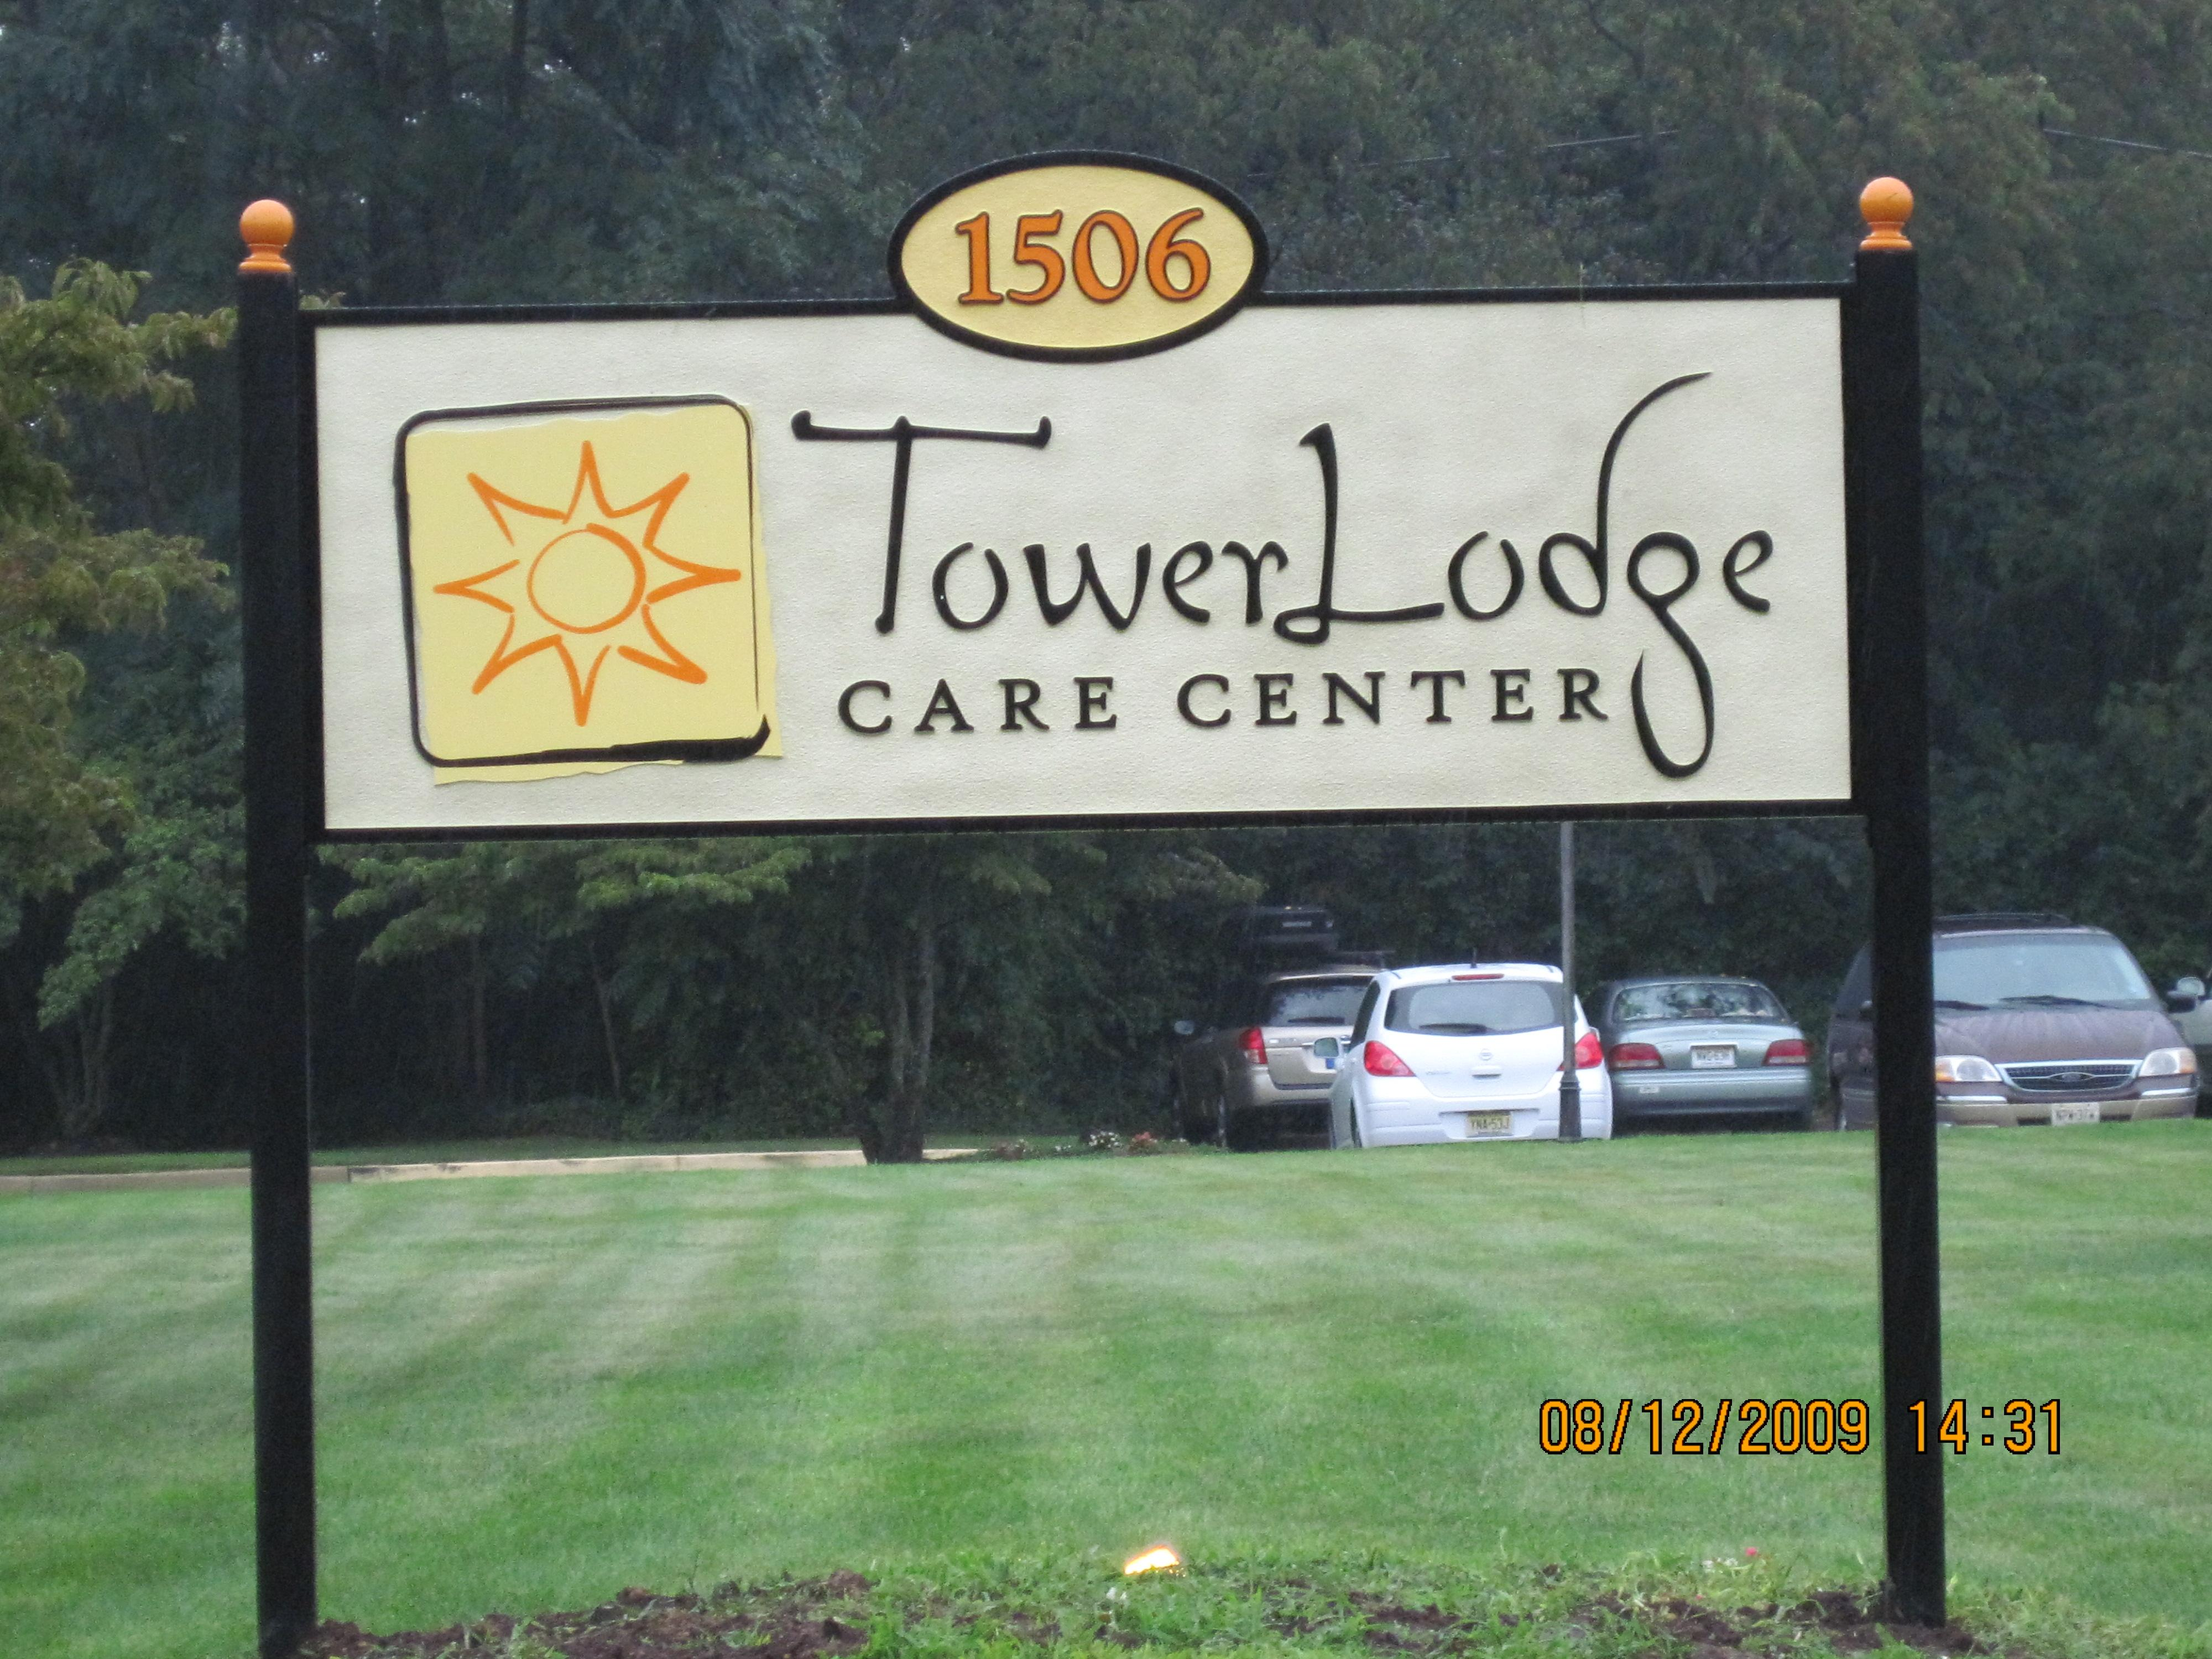 Tower Lodge Care Center - ad image